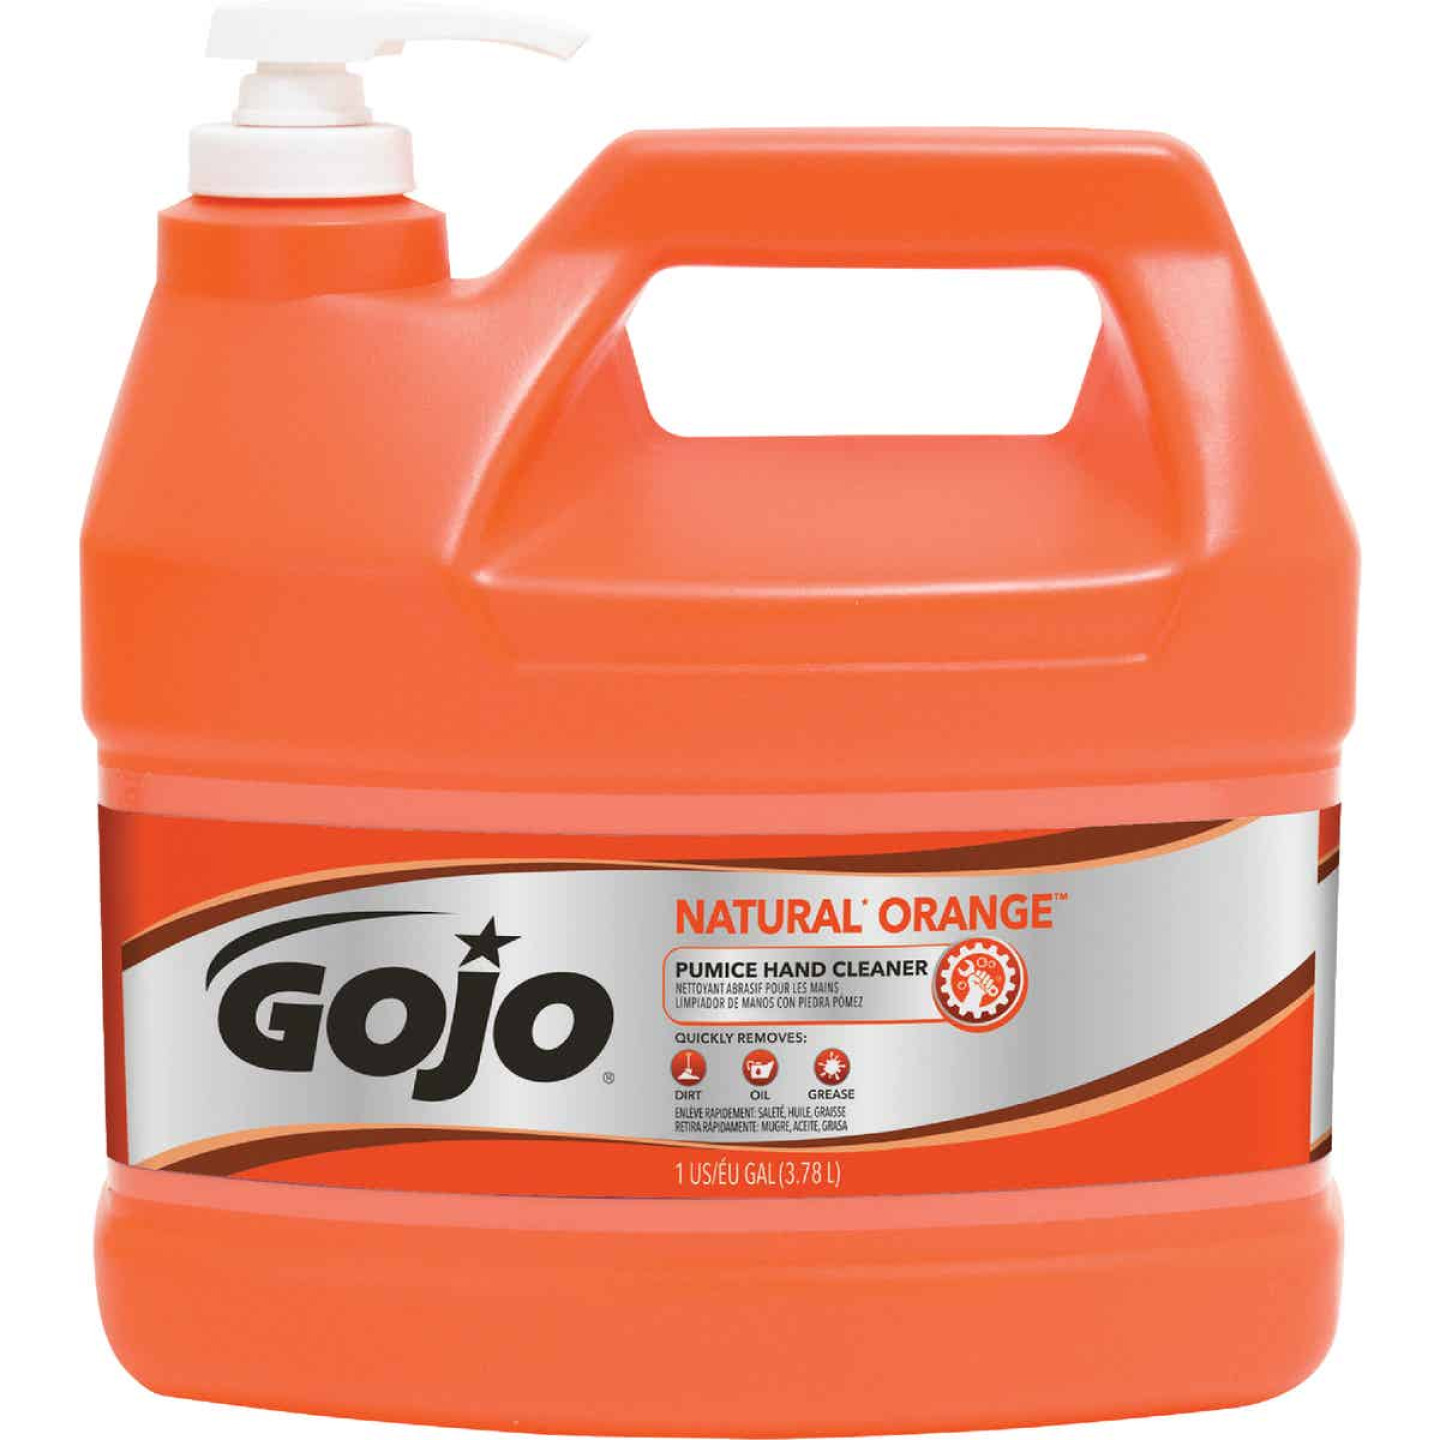 GOJO Natural Orange 1 Gal. Pump Pumice Hand Cleaner Image 1